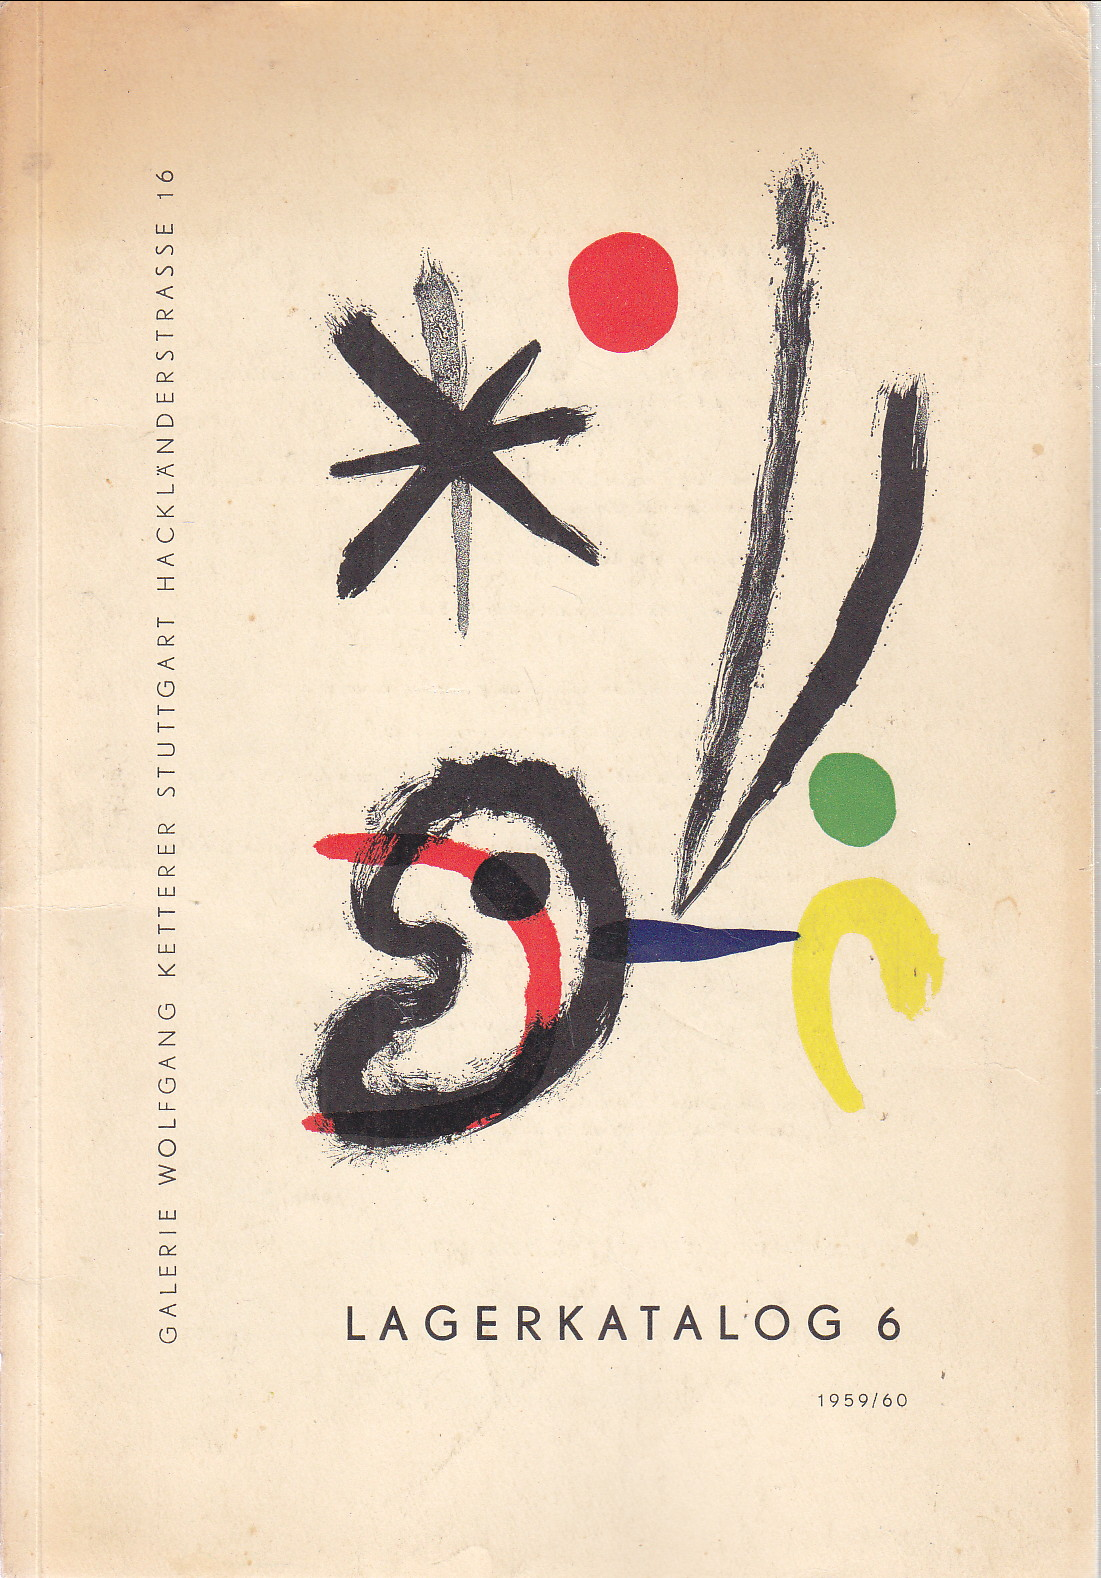 Image for Lagerkatalog 6 1959/60